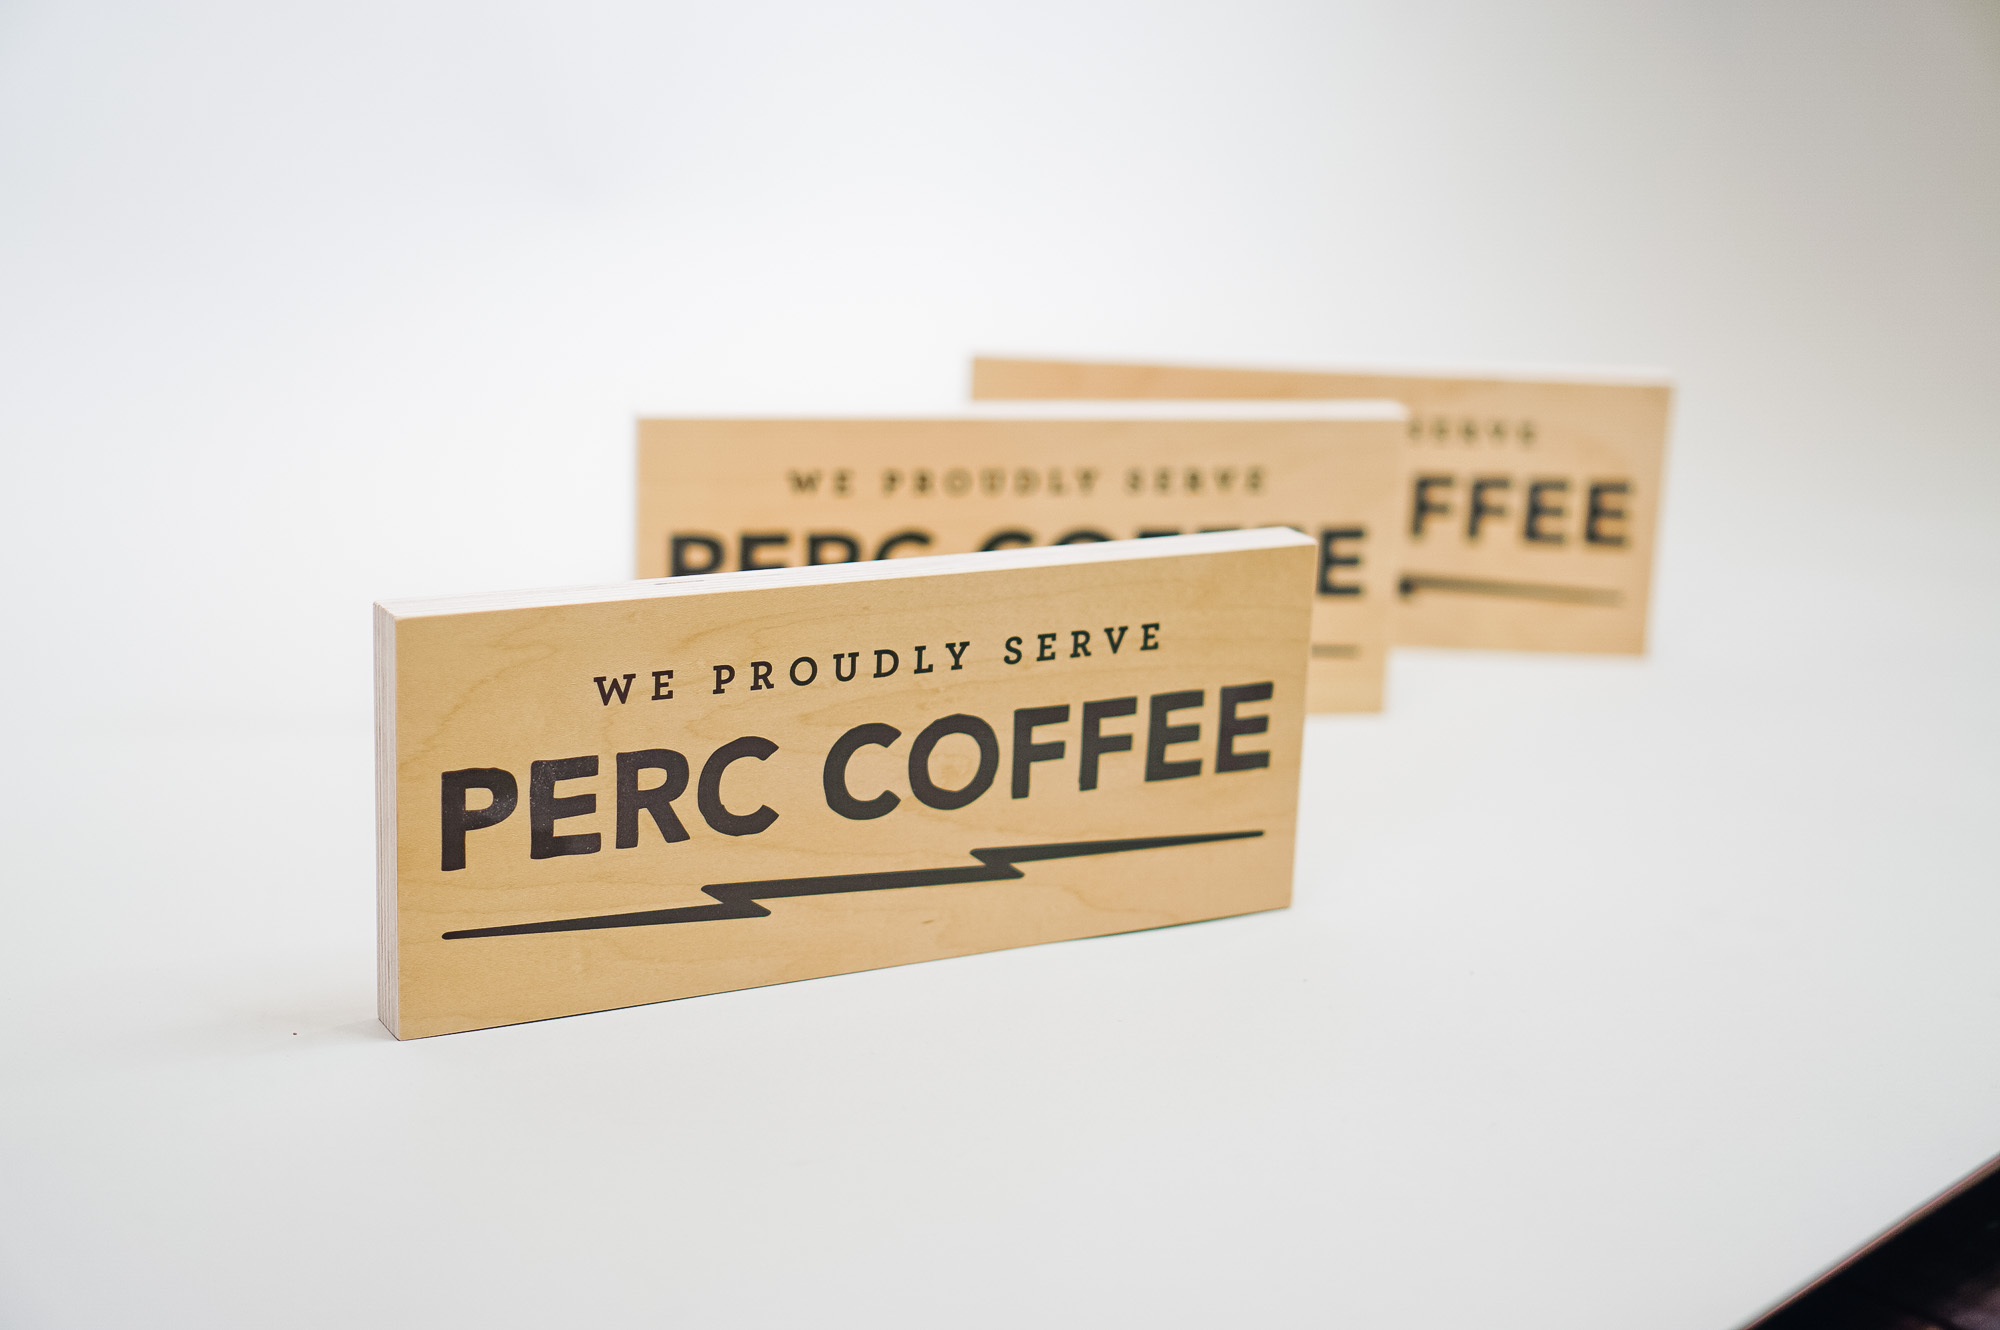 Wood tabletop retail signs for Perc Coffee, a premium coffee roaster in the heart of beautiful Savannah, GA